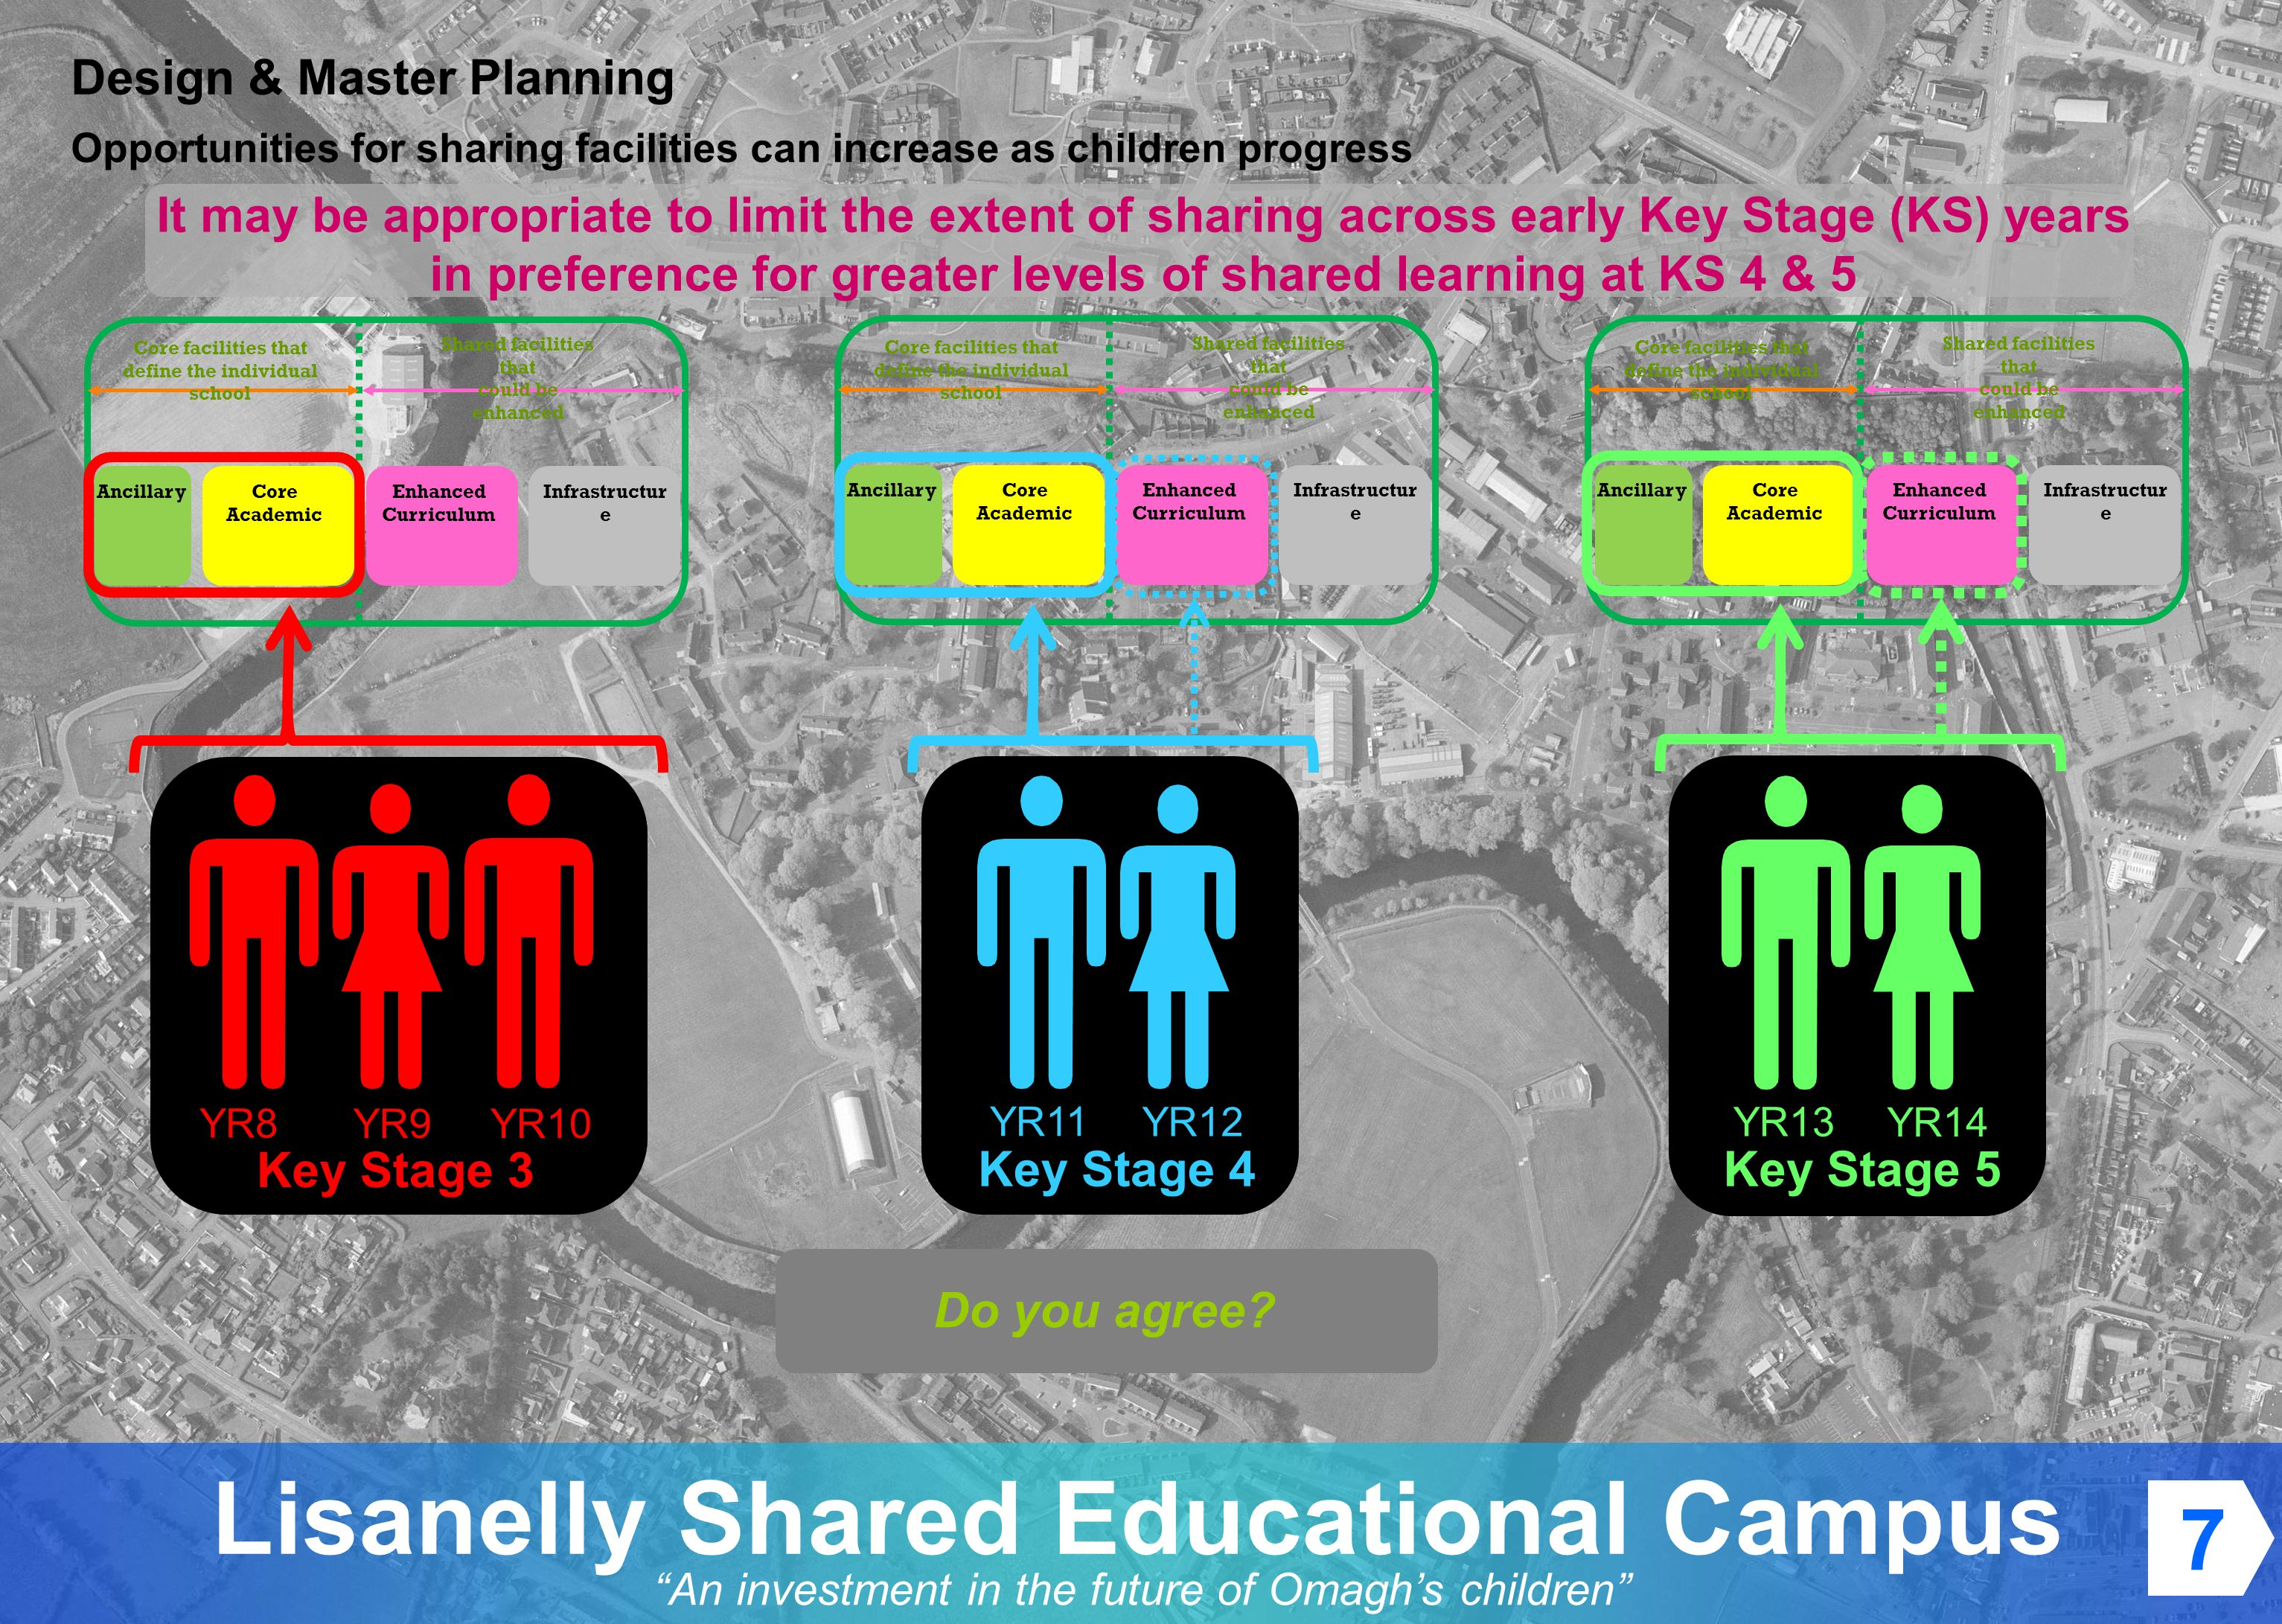 An investment in the future of Omaghs children Lisanelly Shared Educational Campus It may be appropriate to limit the extent of sharing across early Key Stage (KS) years in preference for greater levels of shared learning at KS 4 & 5 Design & Master Planning Opportunities for sharing facilities can increase as children progress Do you agree.